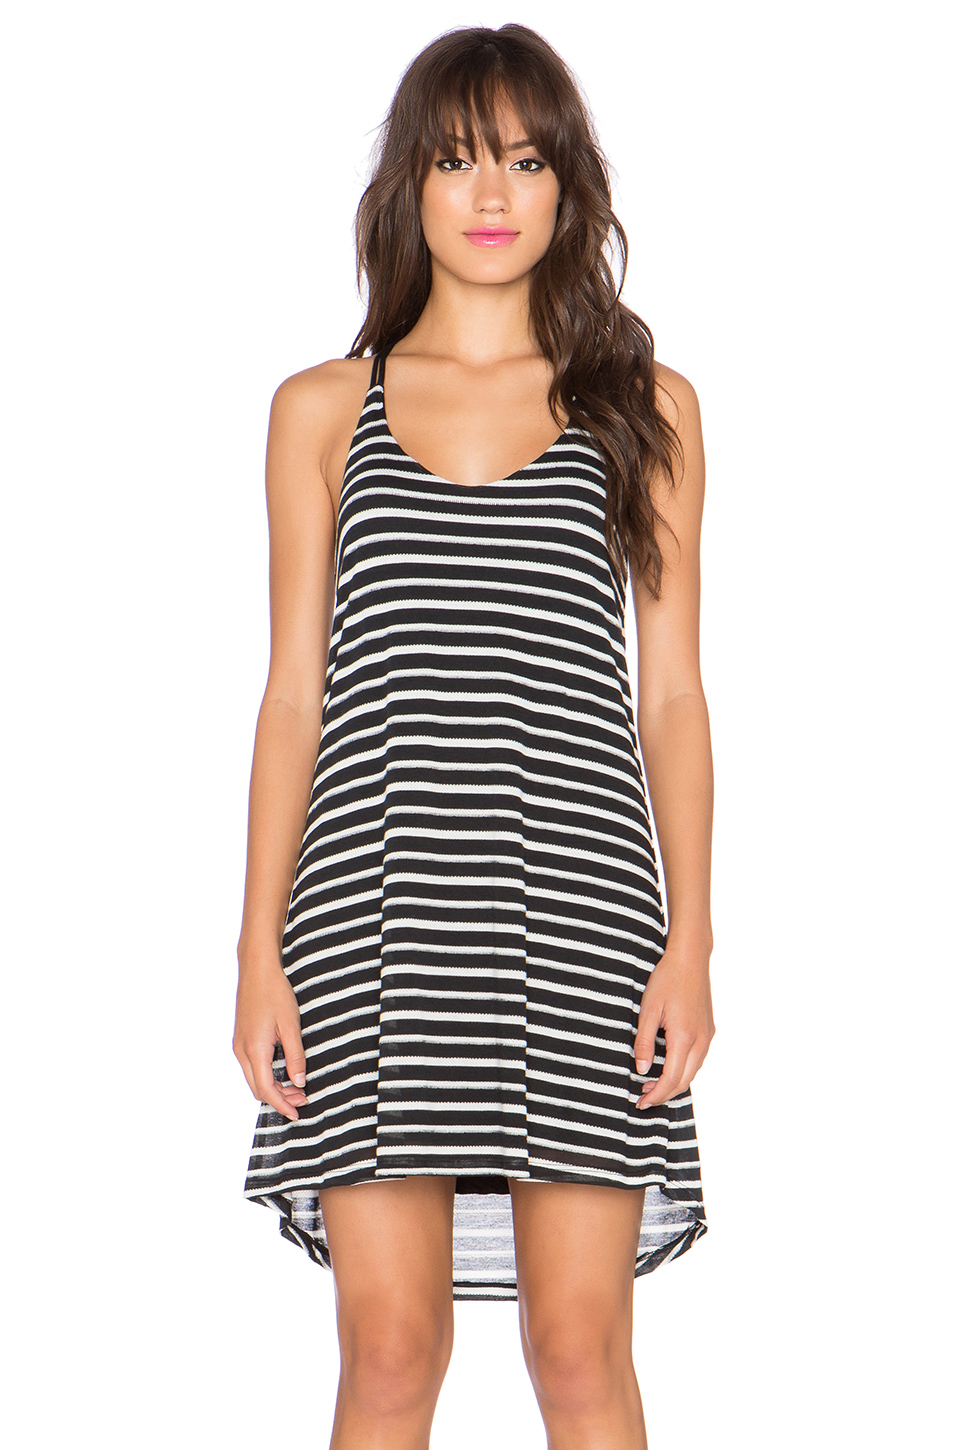 Old Navy provides the definitive selection of tank dresses for women complete with the latest looks and colors. Find tank dresses for women in a plethora of designs that are made for a comfortable fit with that sleek look you can't resist.